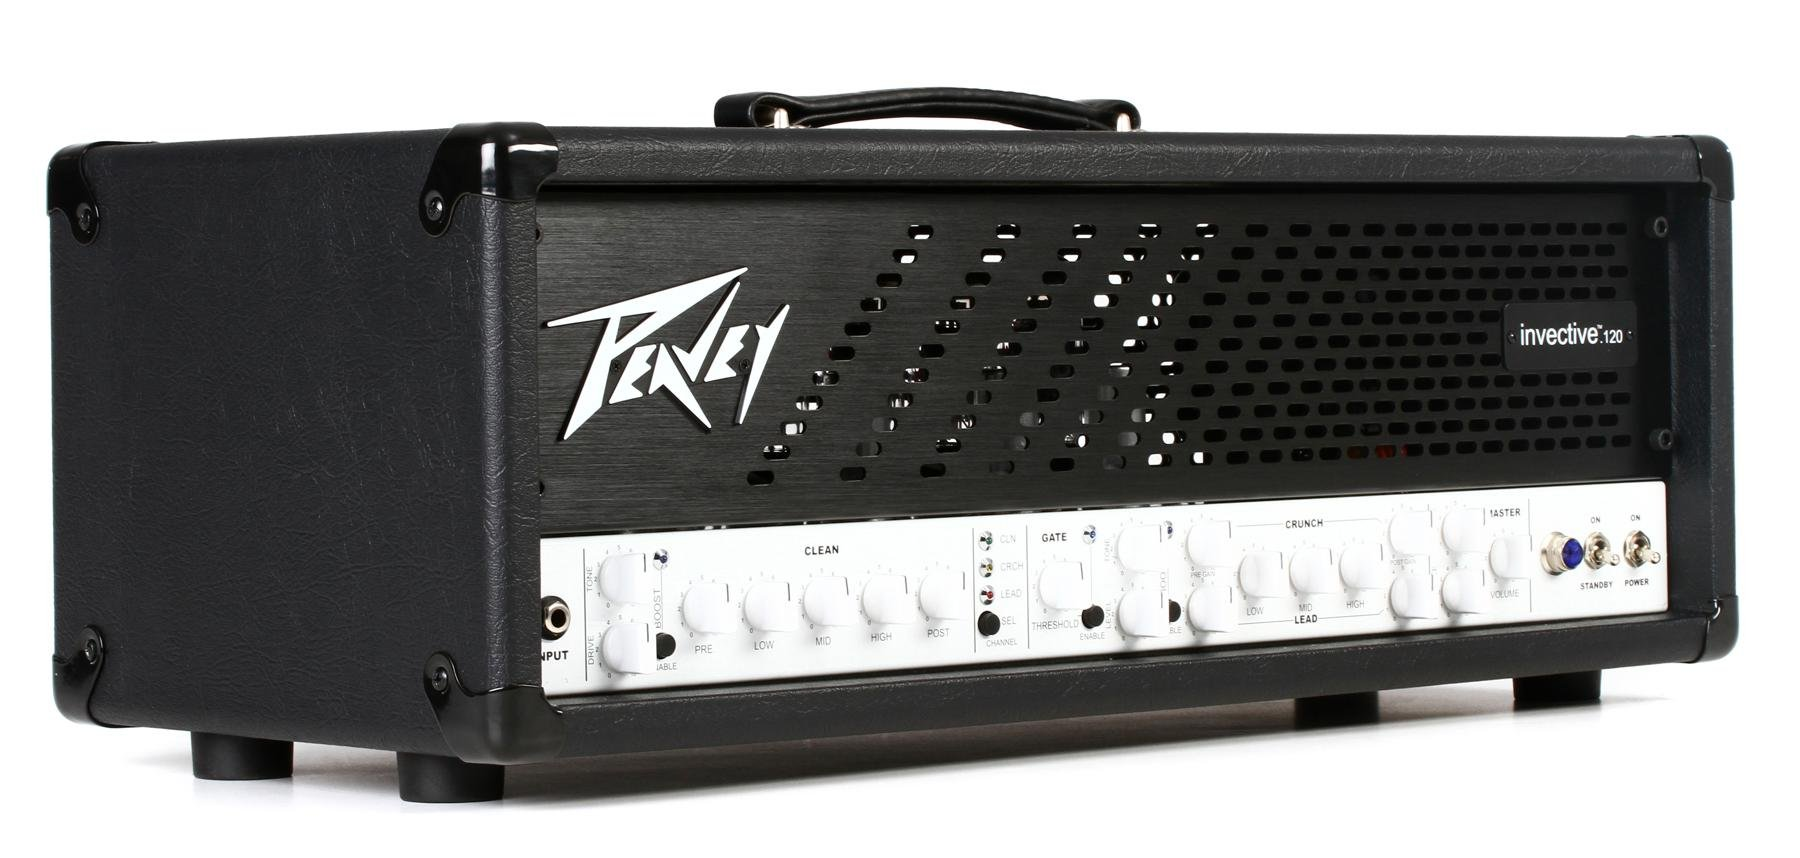 hight resolution of peavey invective 120 120 watt tube head image 1